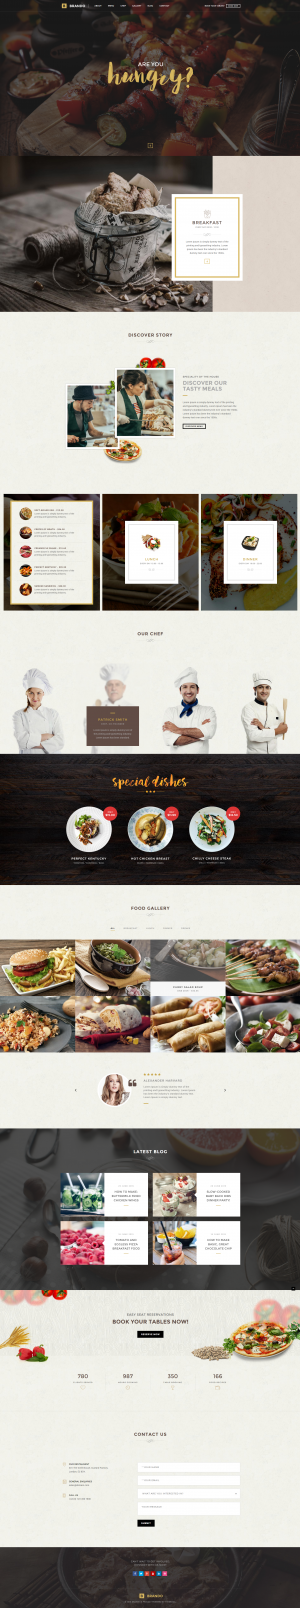 Brando Restaurant OnePage WordPress Theme